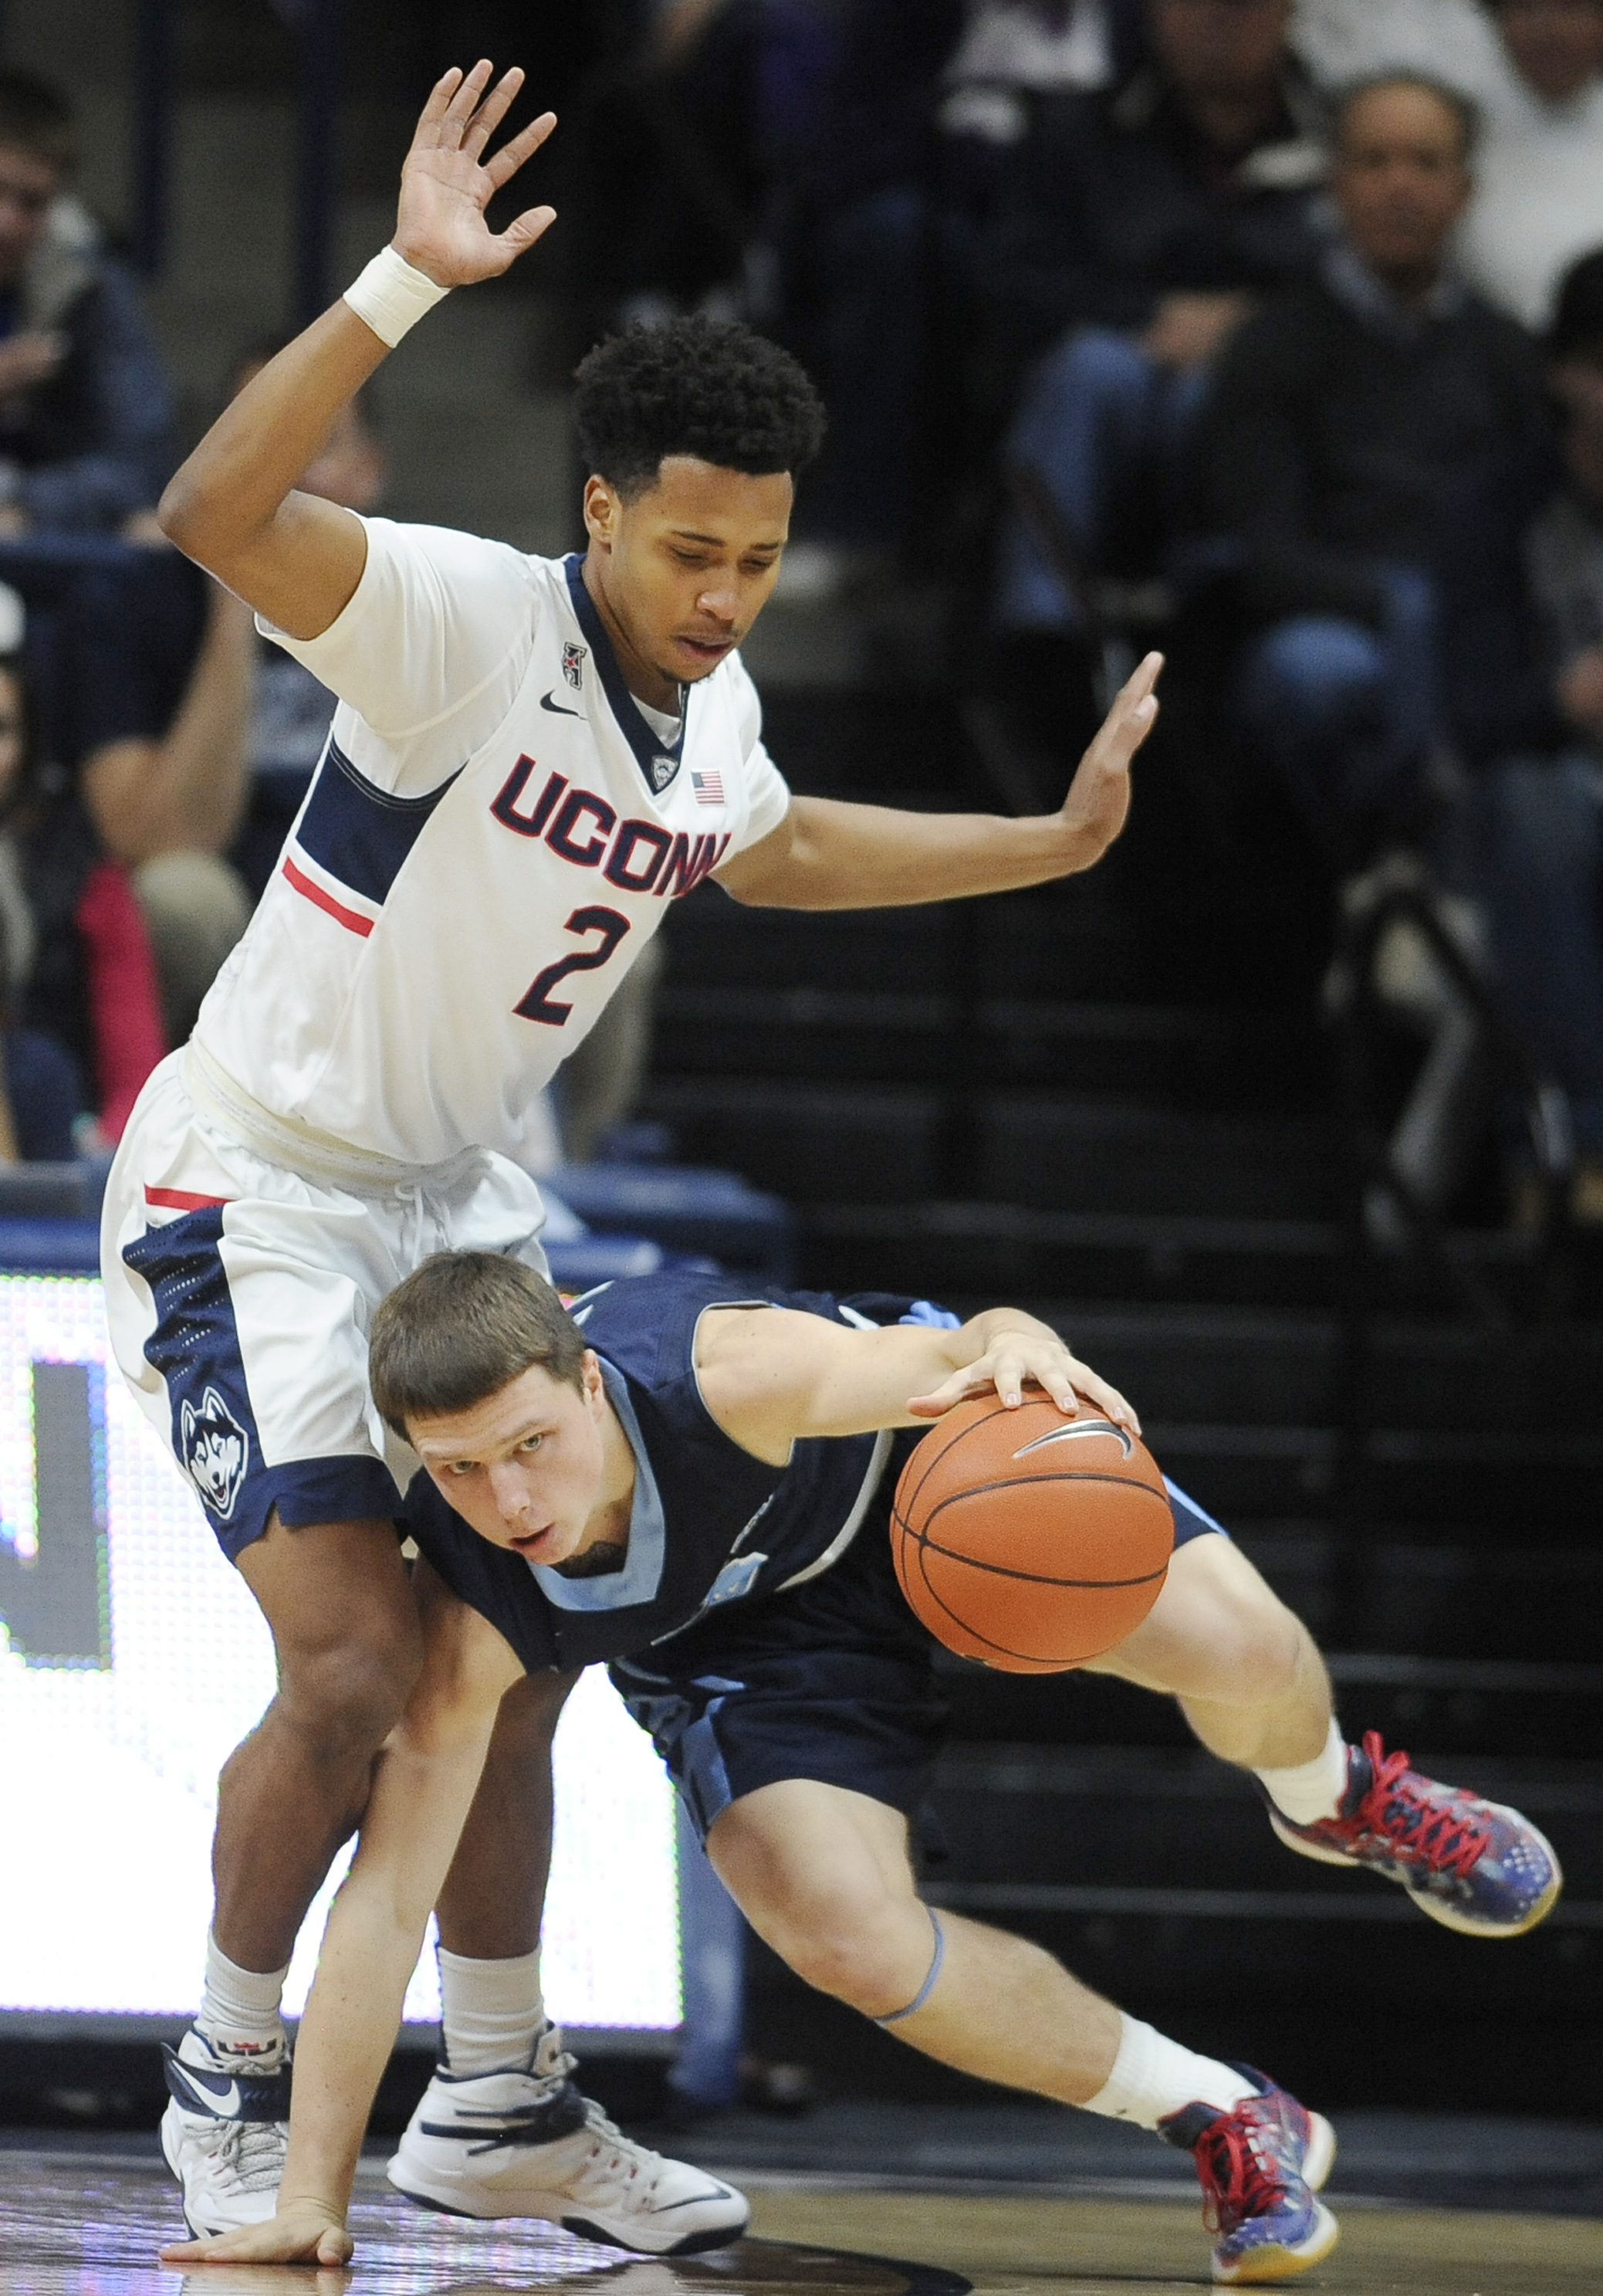 Maine's Christian Ejiga, right, stumbles while dribbling around Connecticut's Jalen Adams during the first half of an NCAA college basketball game, Friday, Nov. 13, 2015, in Storrs, Conn. (AP Photo/Jessica Hill)